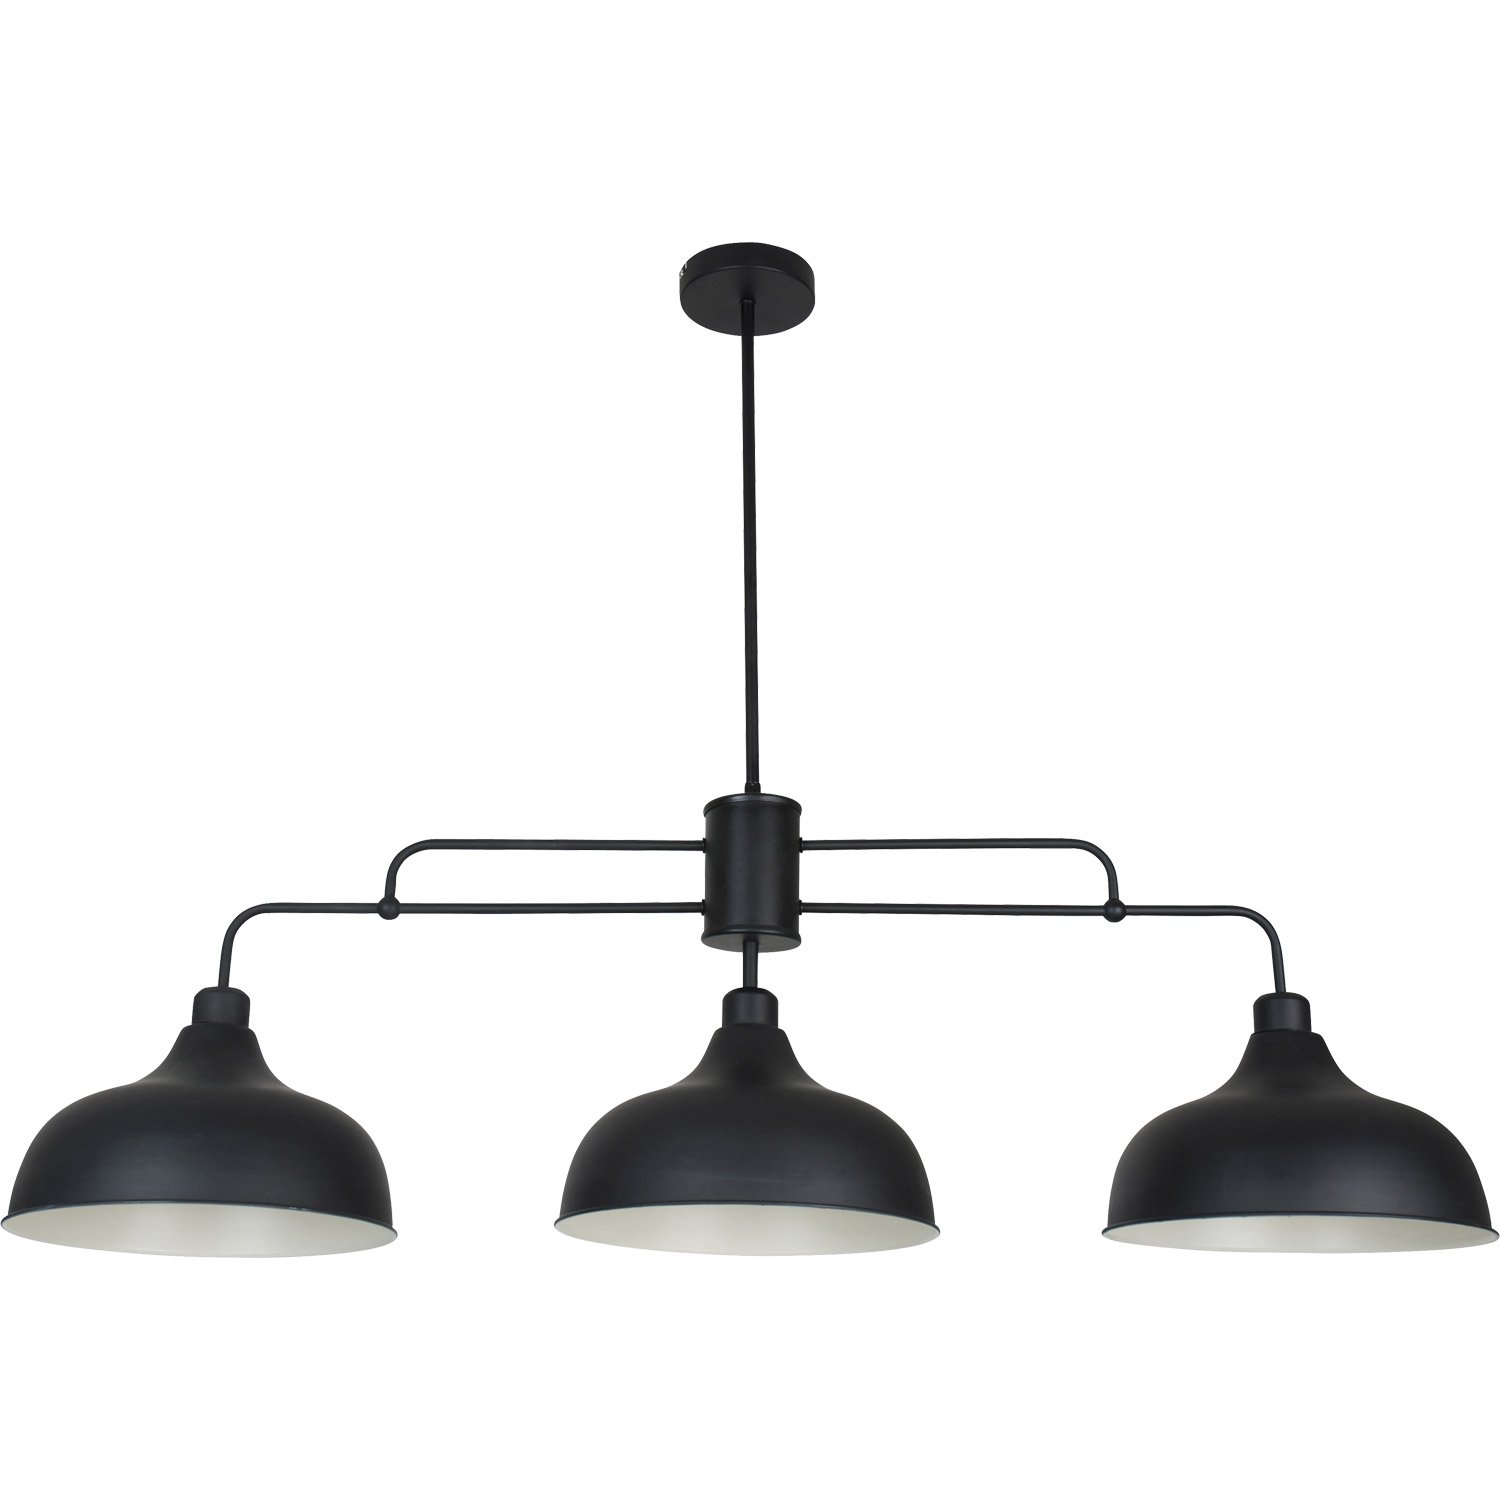 Leroy Merlin Leroy Photos Luminaire Merlin Photos Suspension Luminaire Suspension Suspension J3TFK1lc